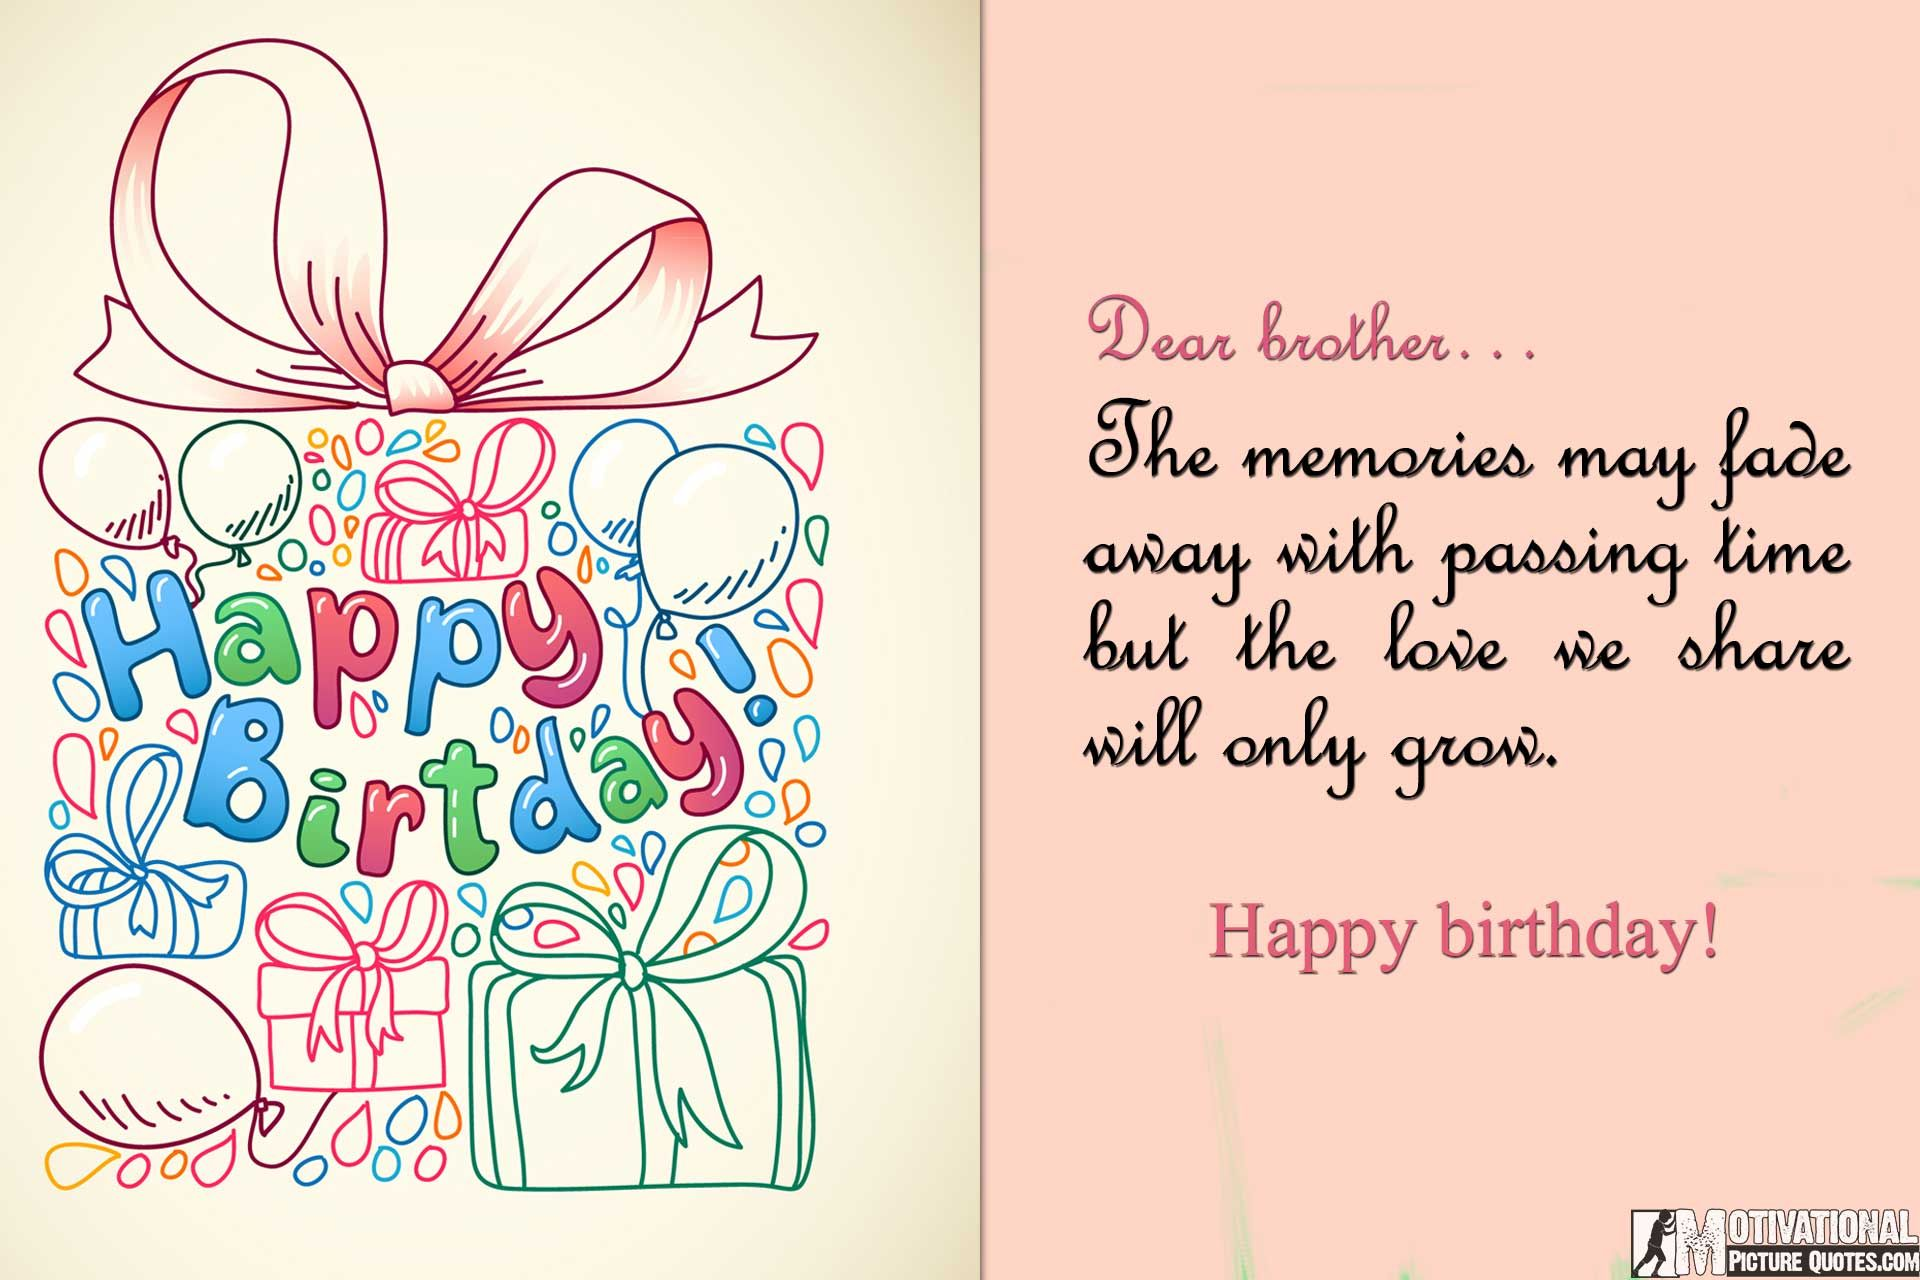 Inspirational Birthday Quotes Images (With images